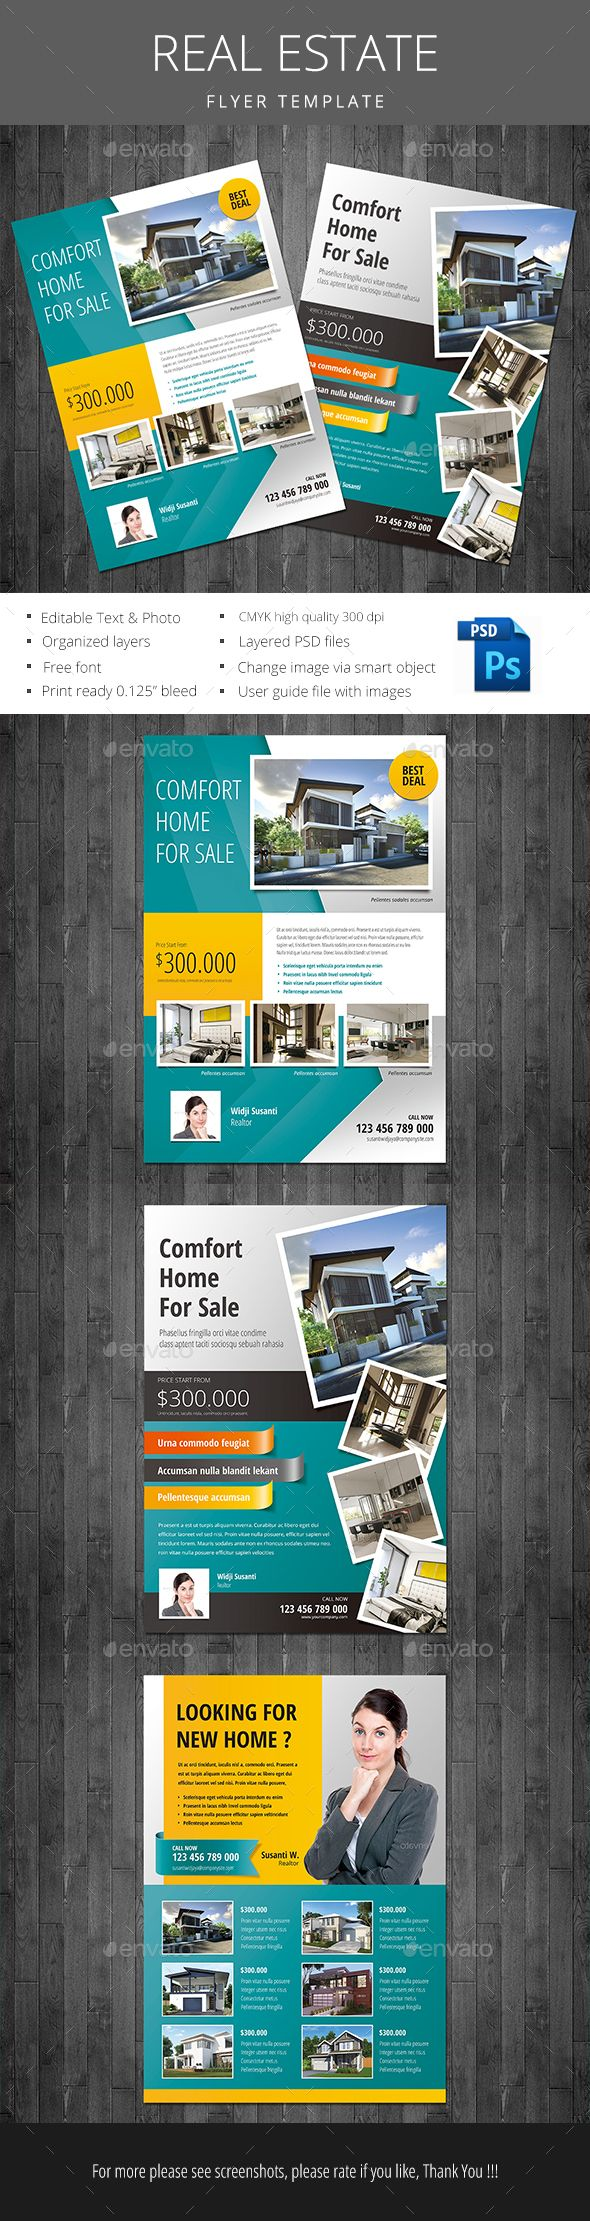 best images about layout design corporate real estate flyer